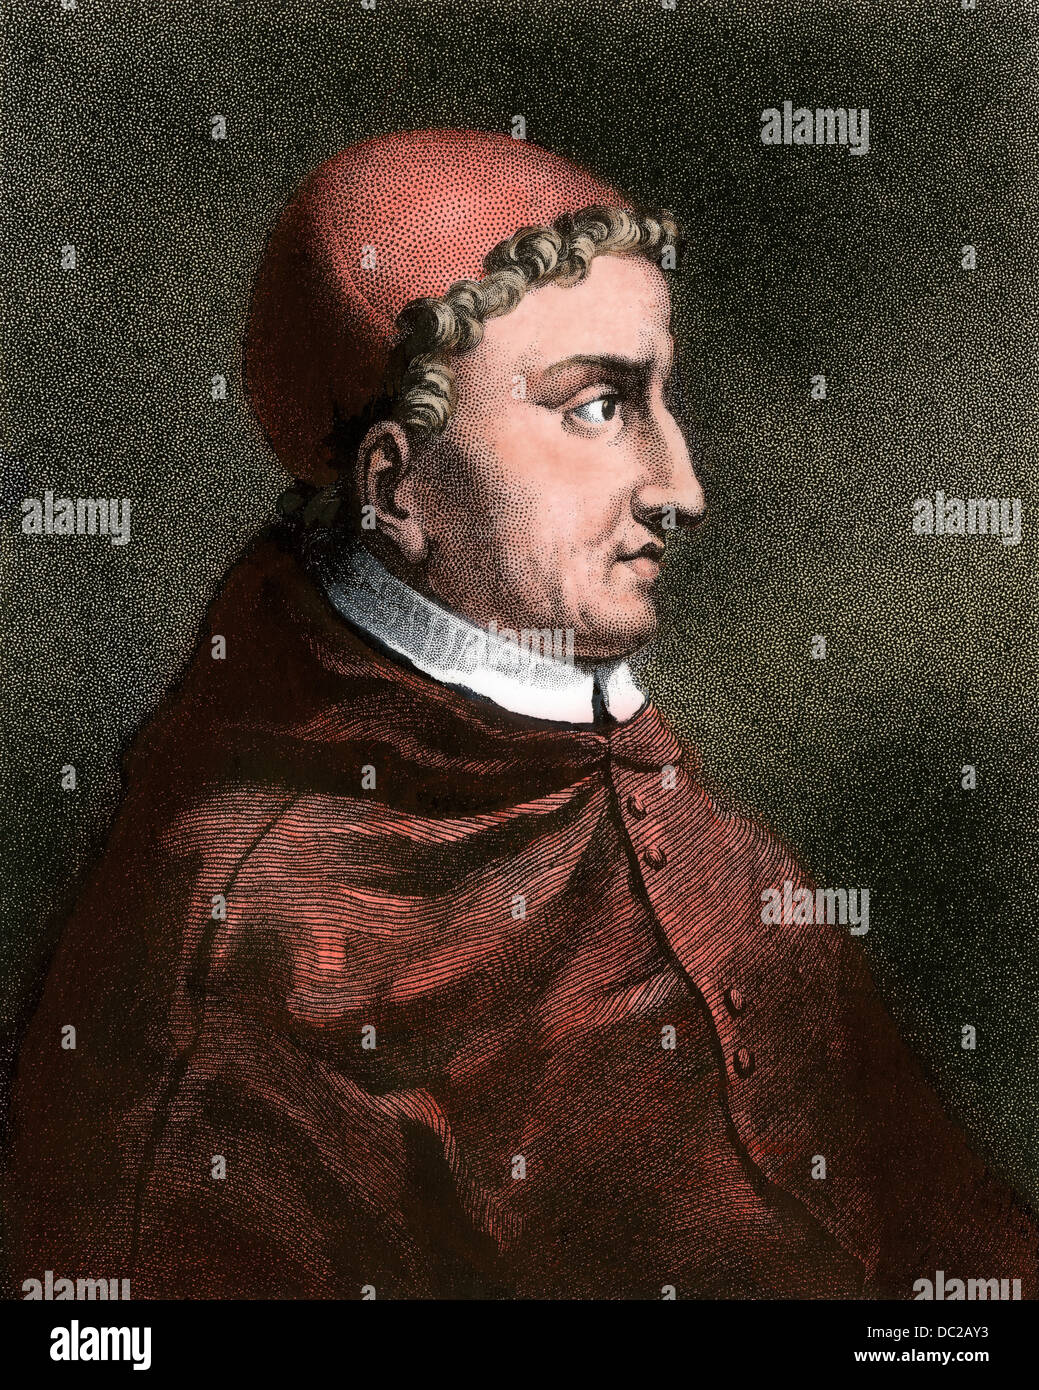 Cardinal Ximenes of Spain. Hand-colored engraving - Stock Image